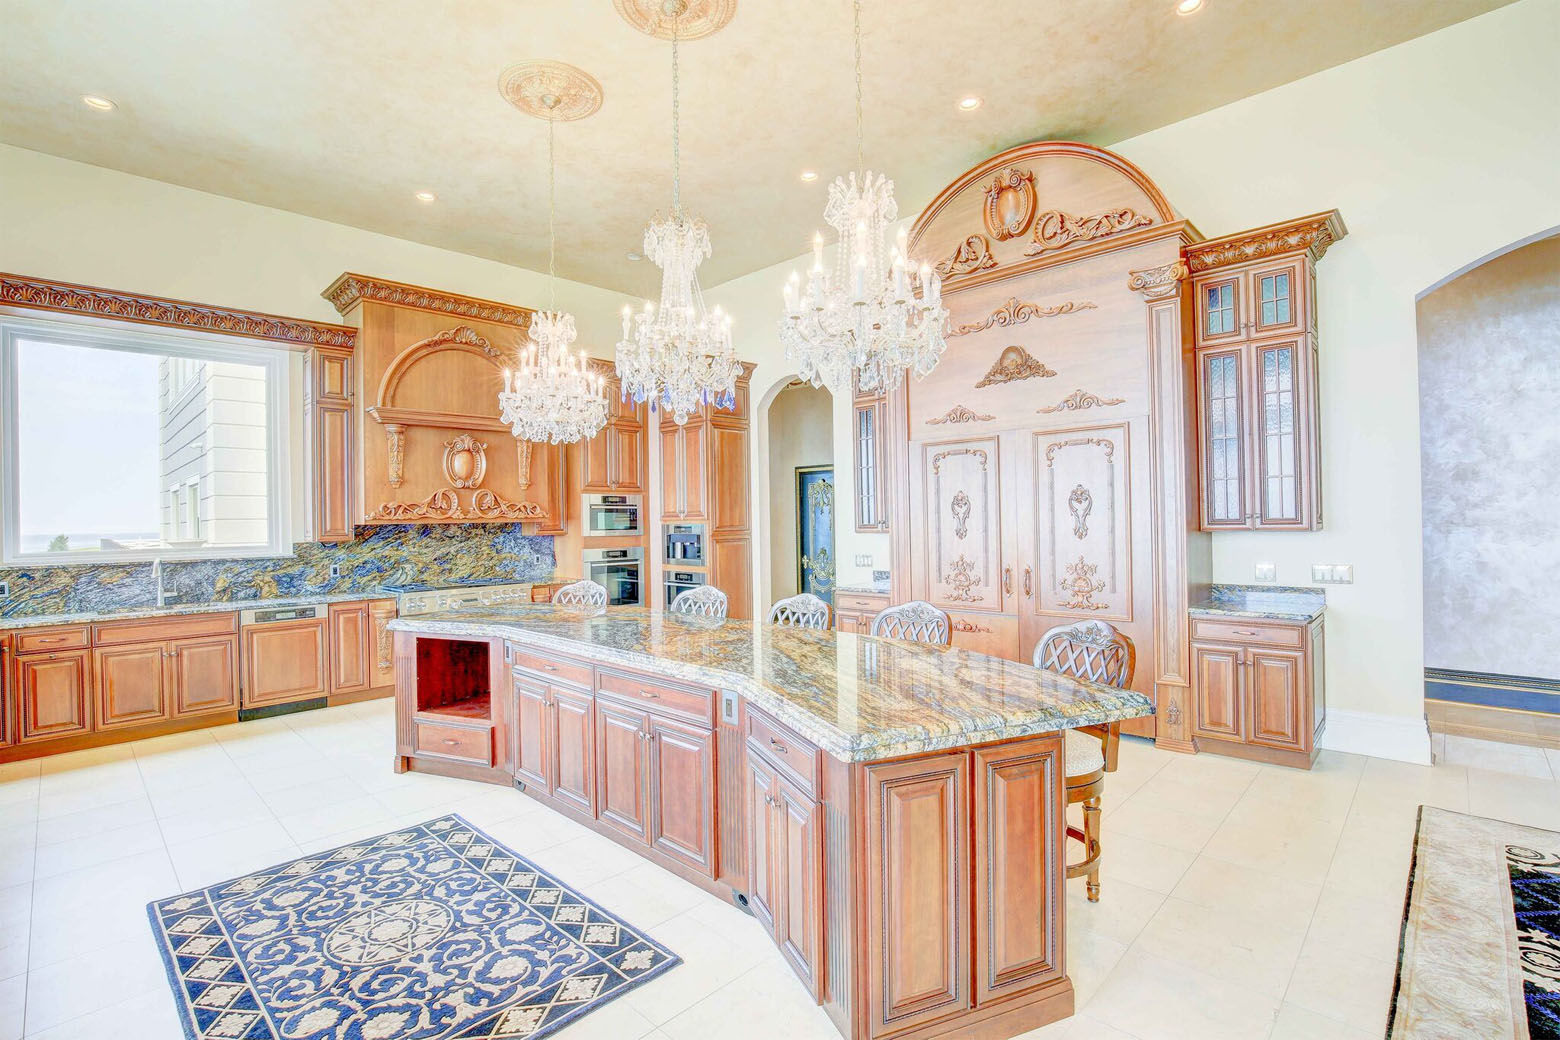 The Love Point estate features a large kitchen space and wet bar. (Courtesy Phil and Victoria Gerdes)